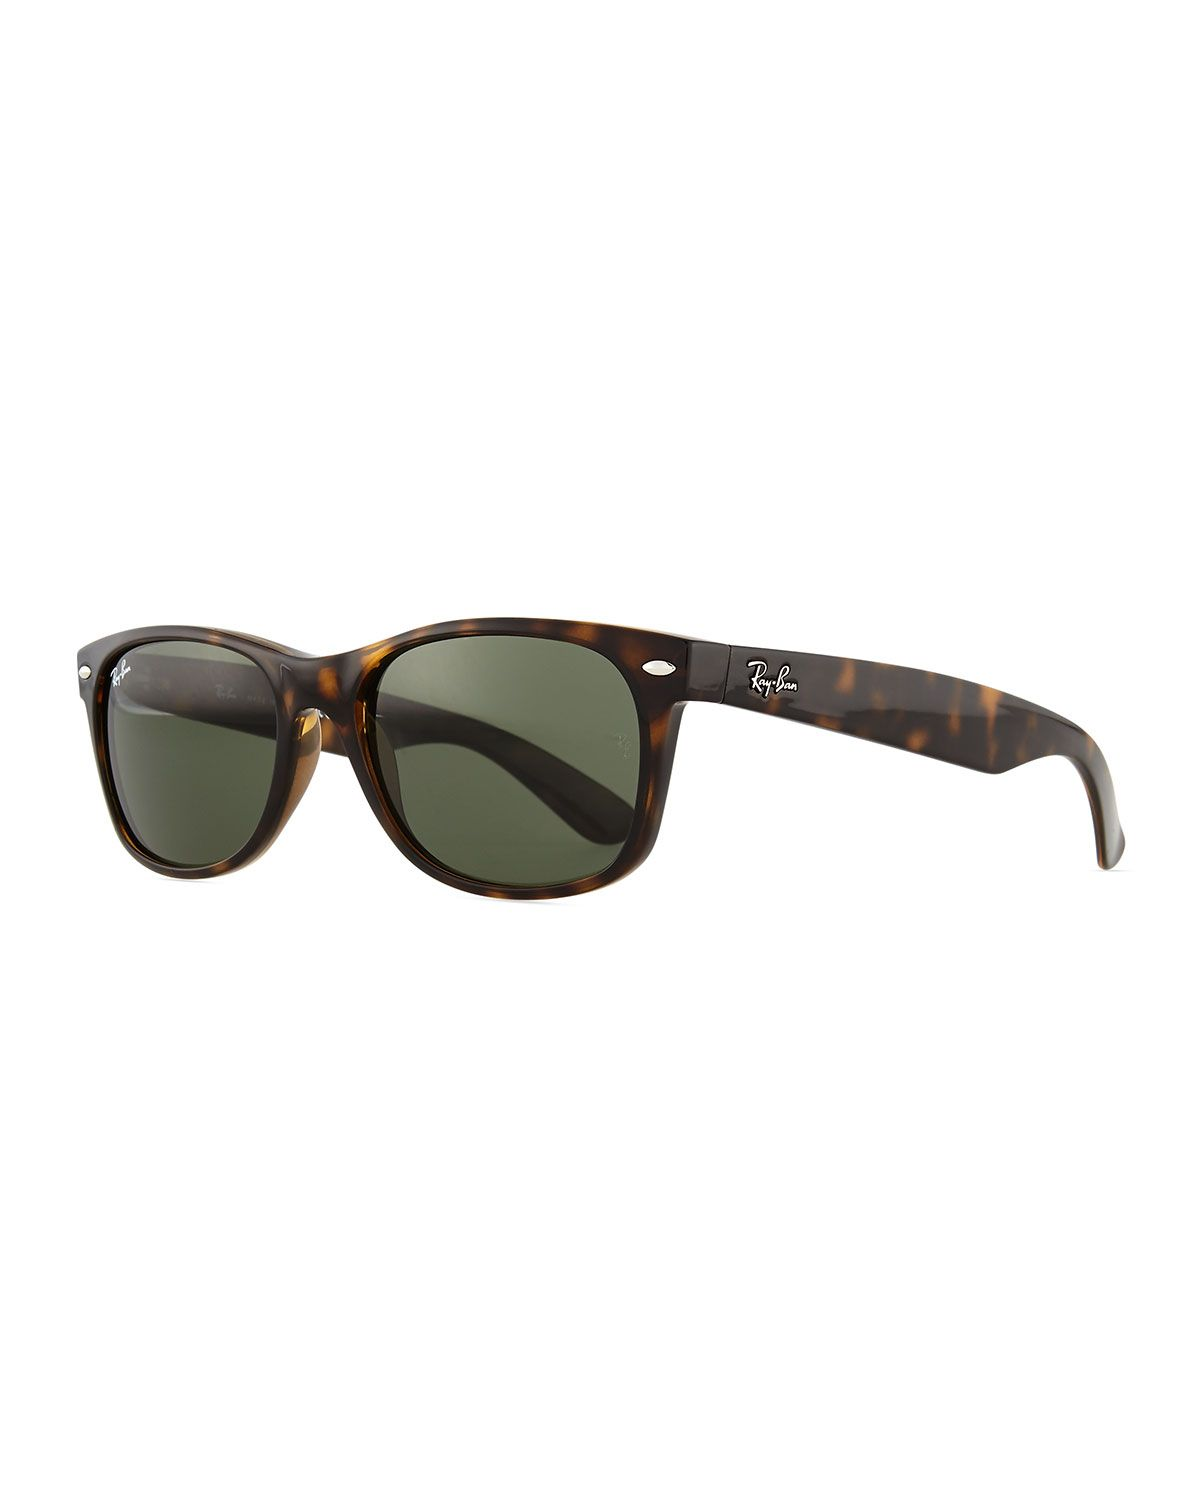 48be1b6826 New Wayfarer Classic Sunglasses Tortoise